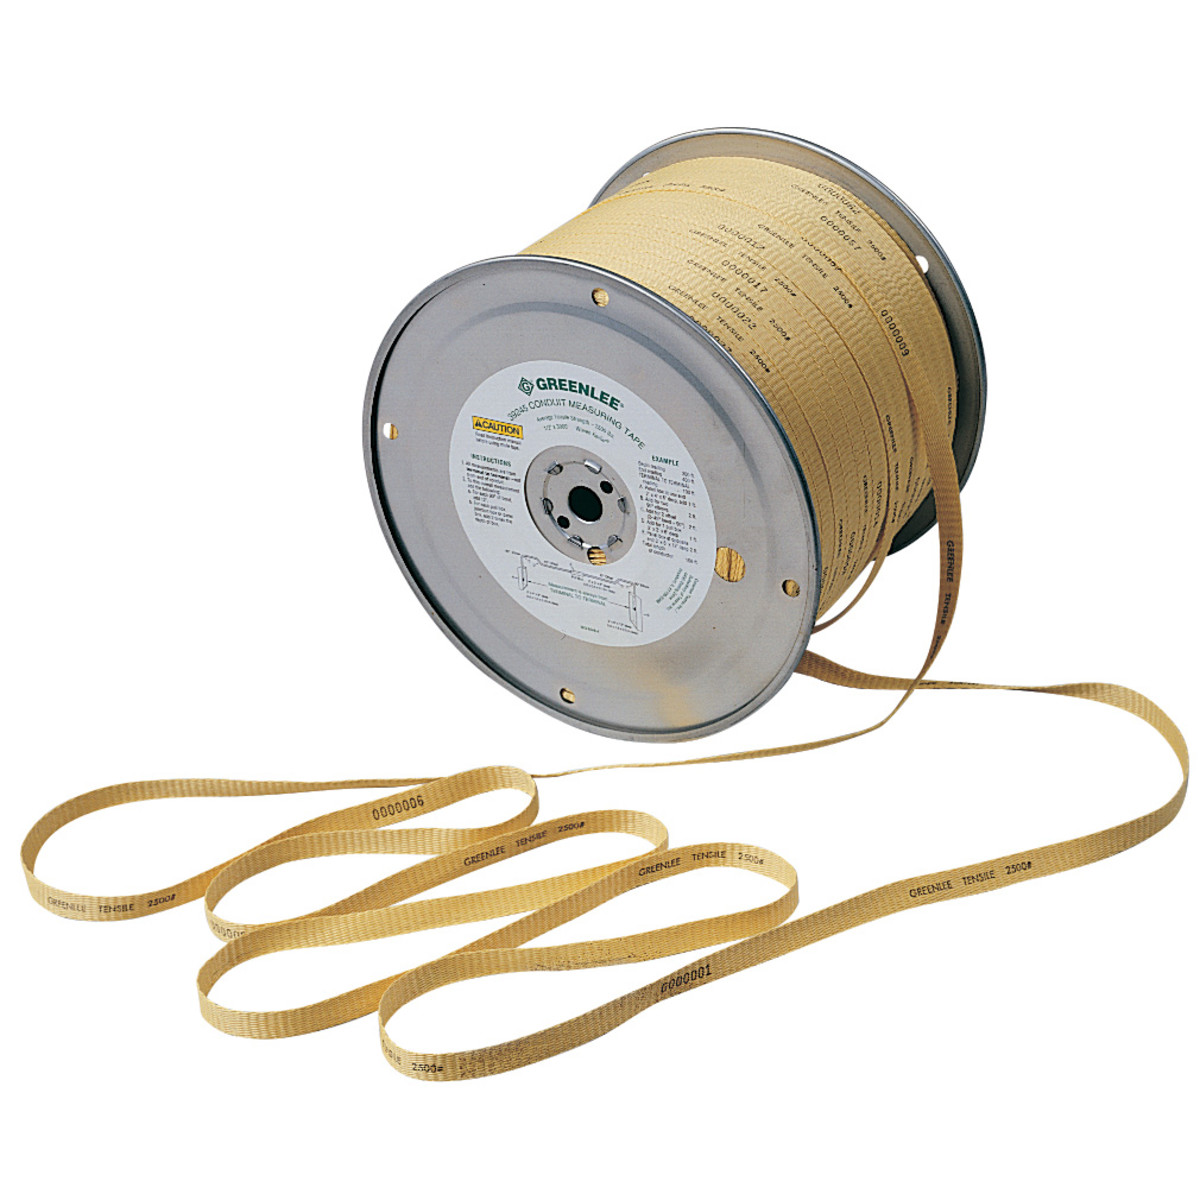 Greenlee 39245 Tape Measuring-2500# (Polyaramid)